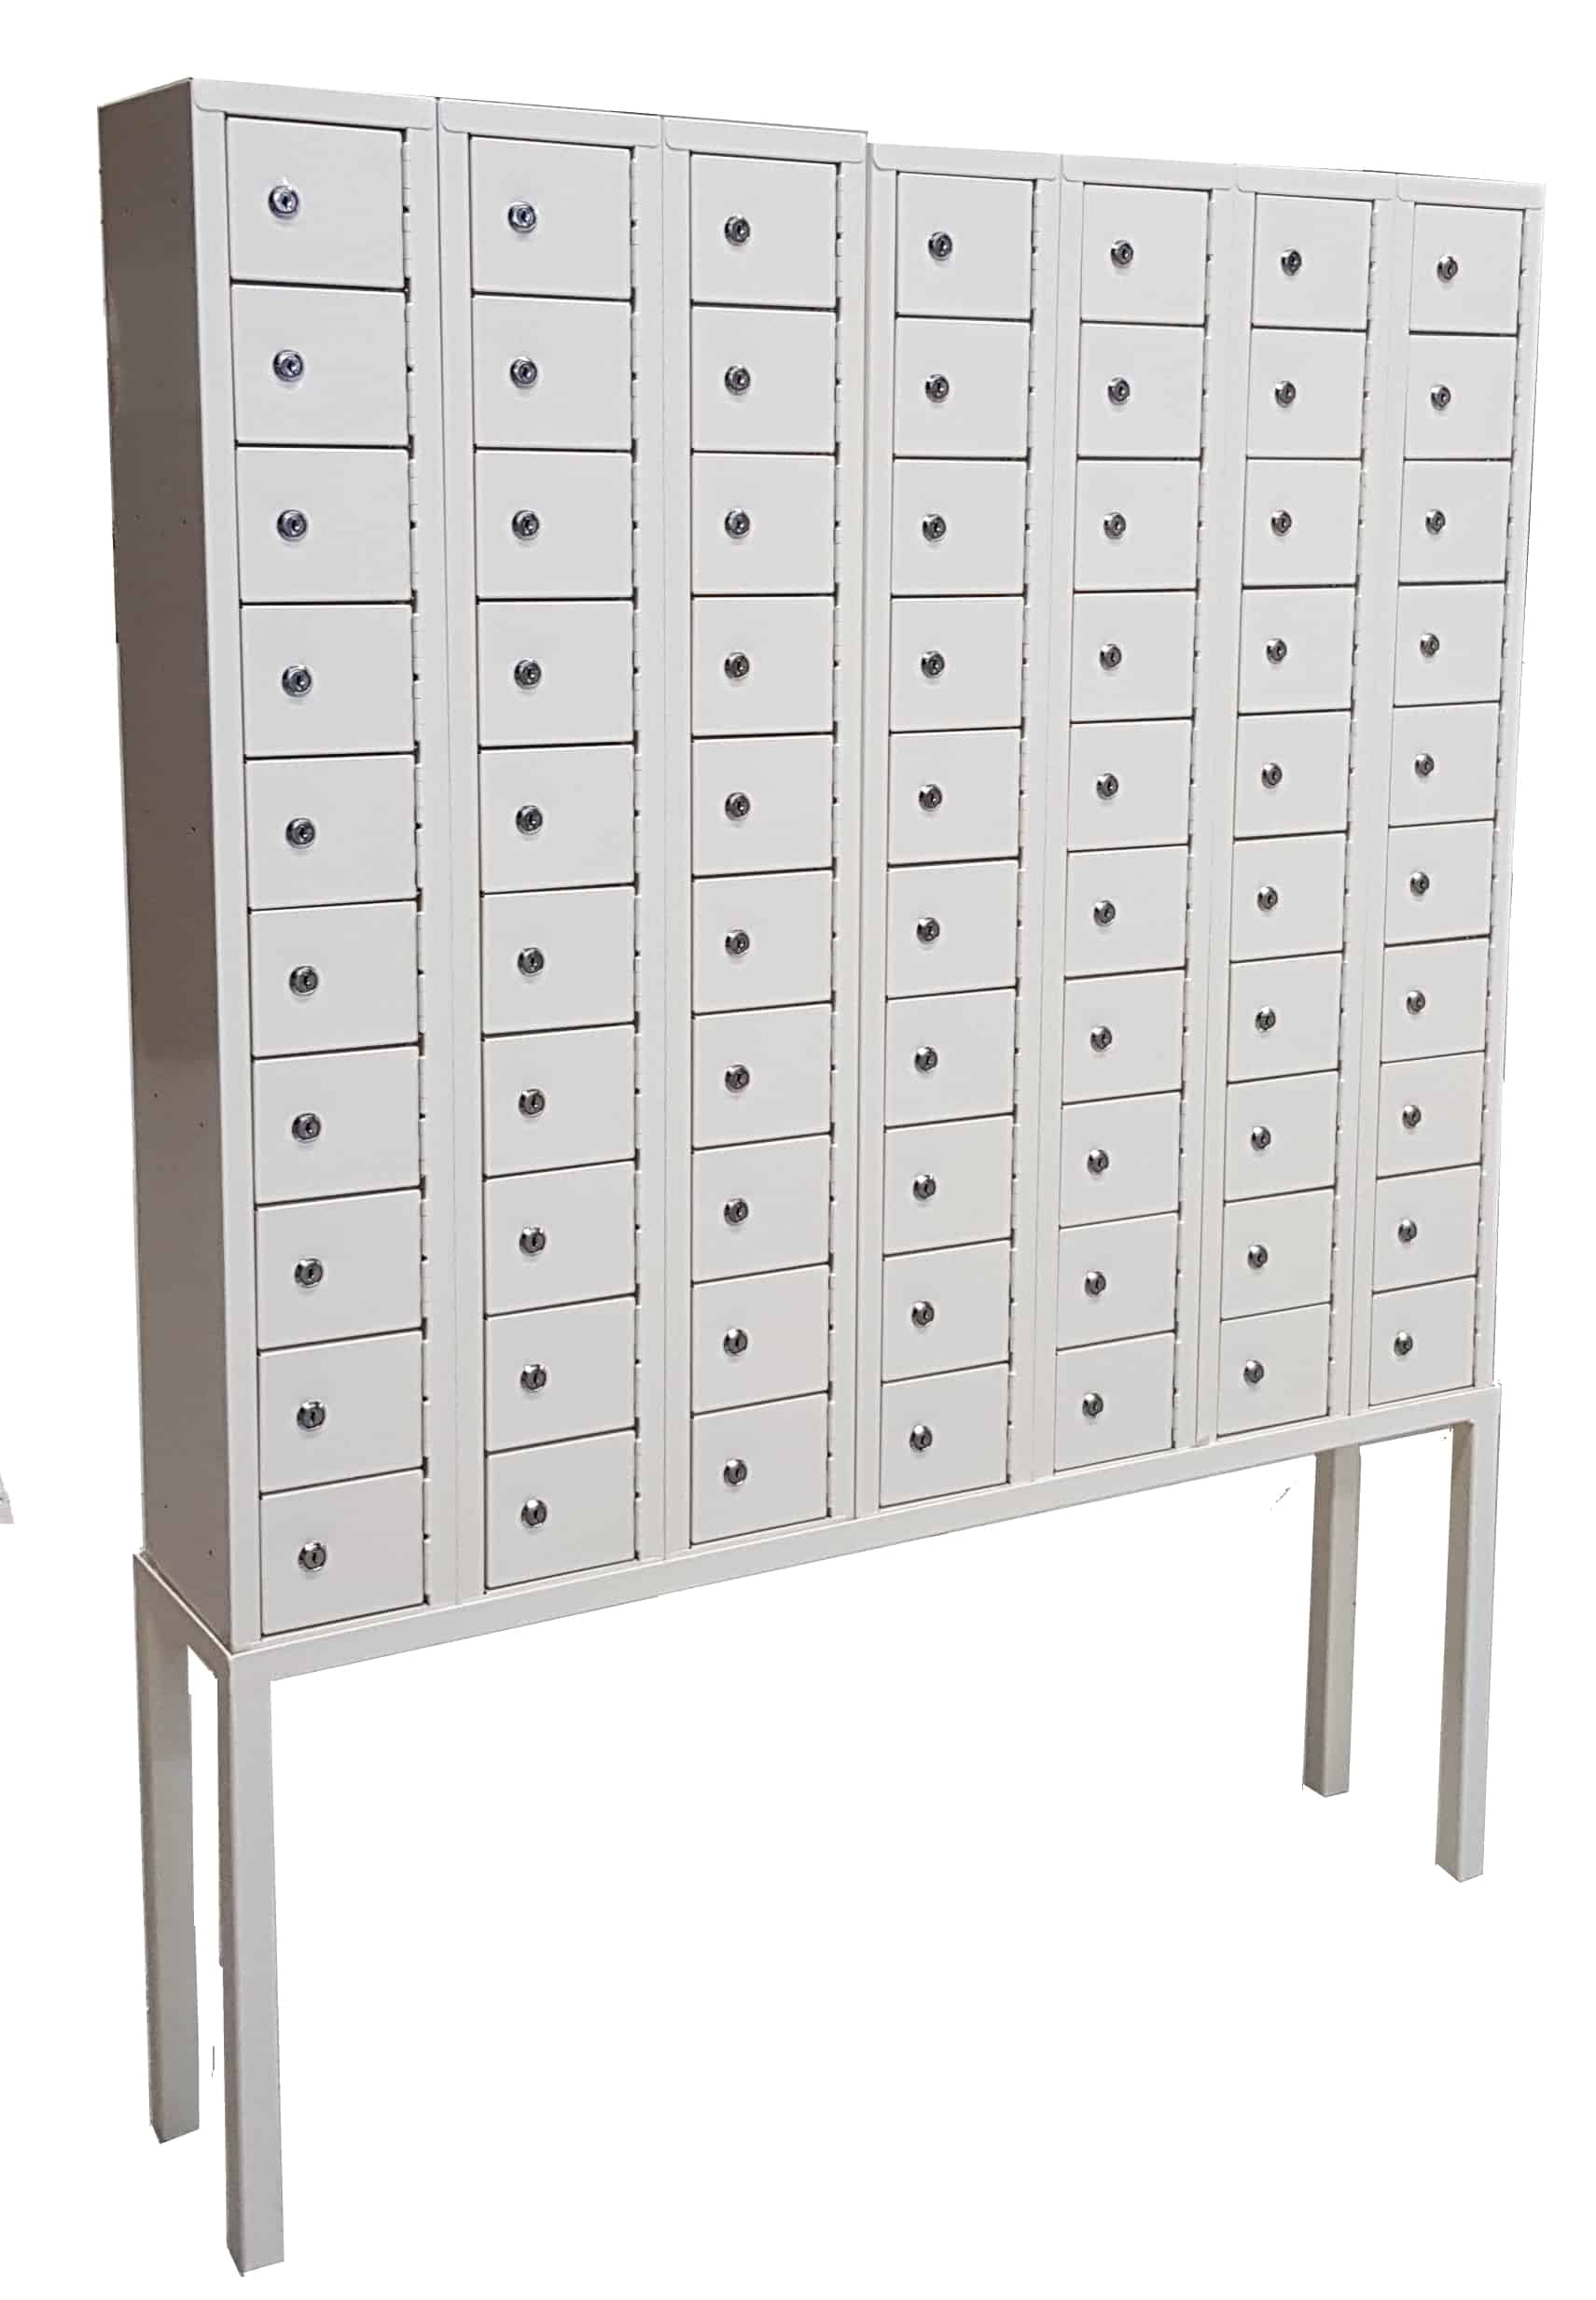 Statewide Micro Locker on Stand - JPG